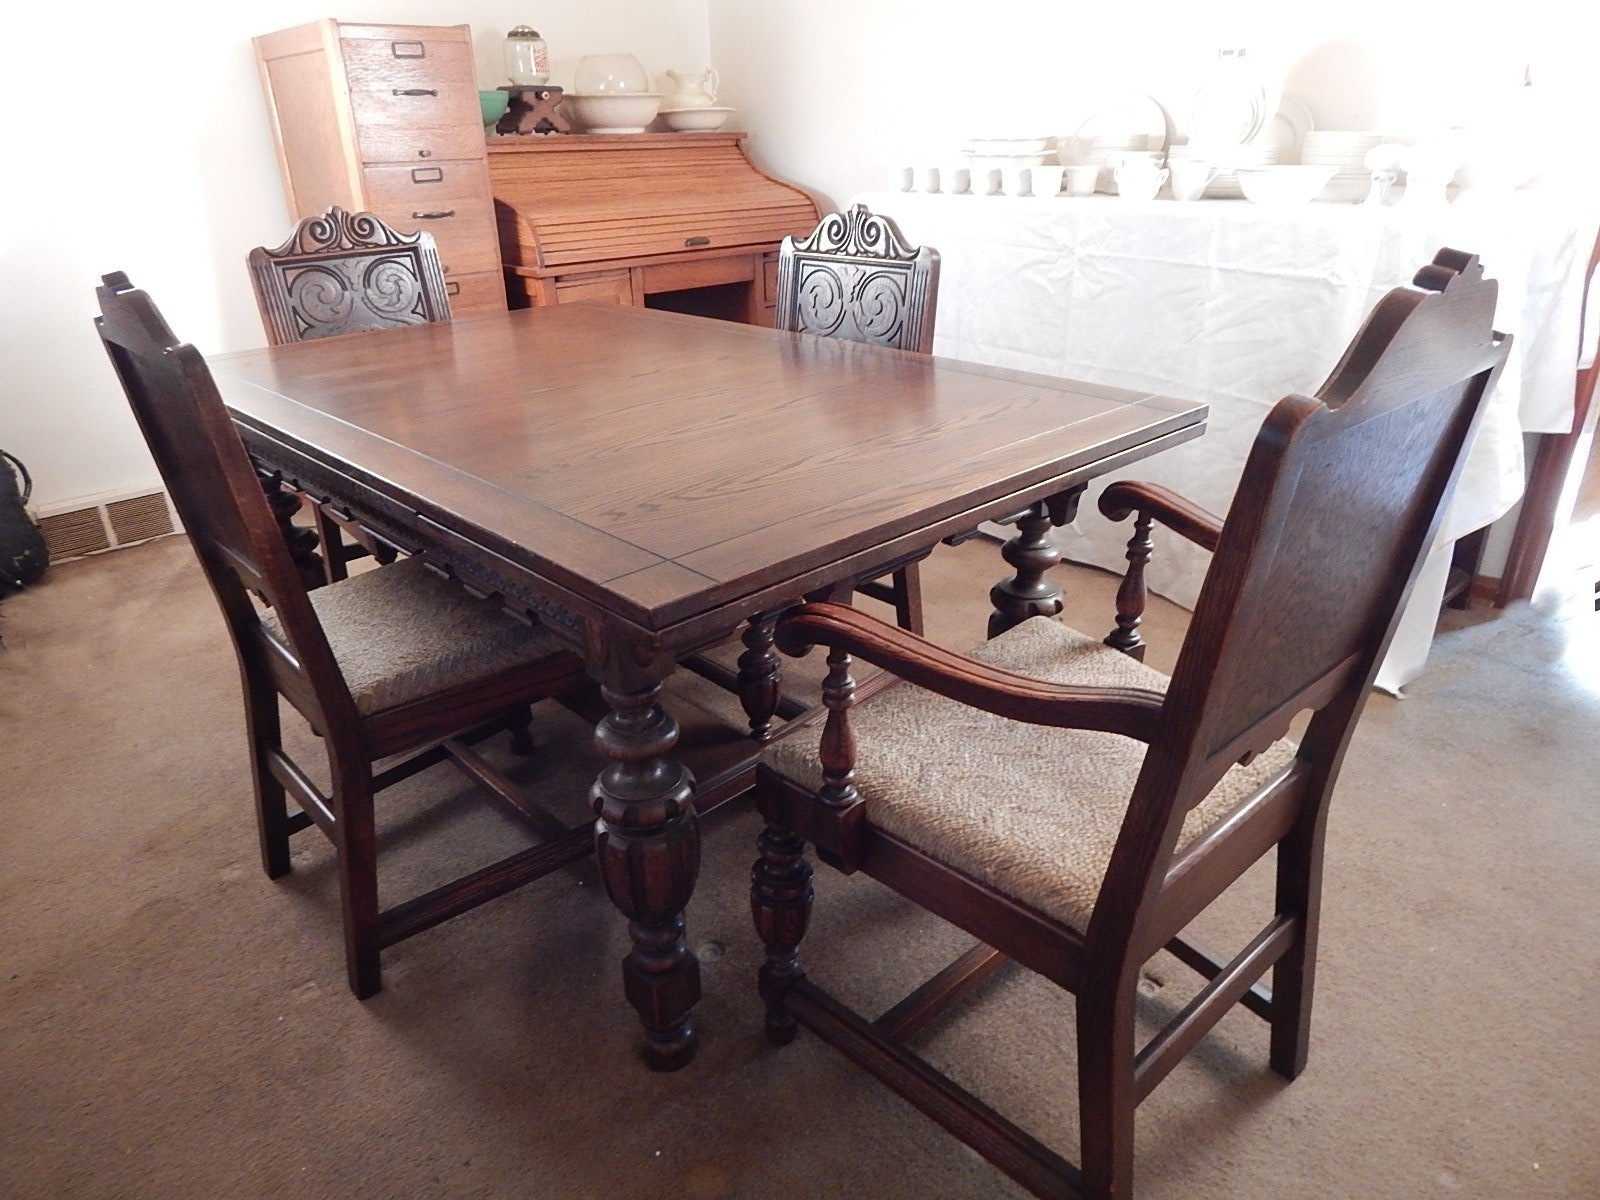 1930 S Jacobean Revival Carved Oak Table Chairs Ebth